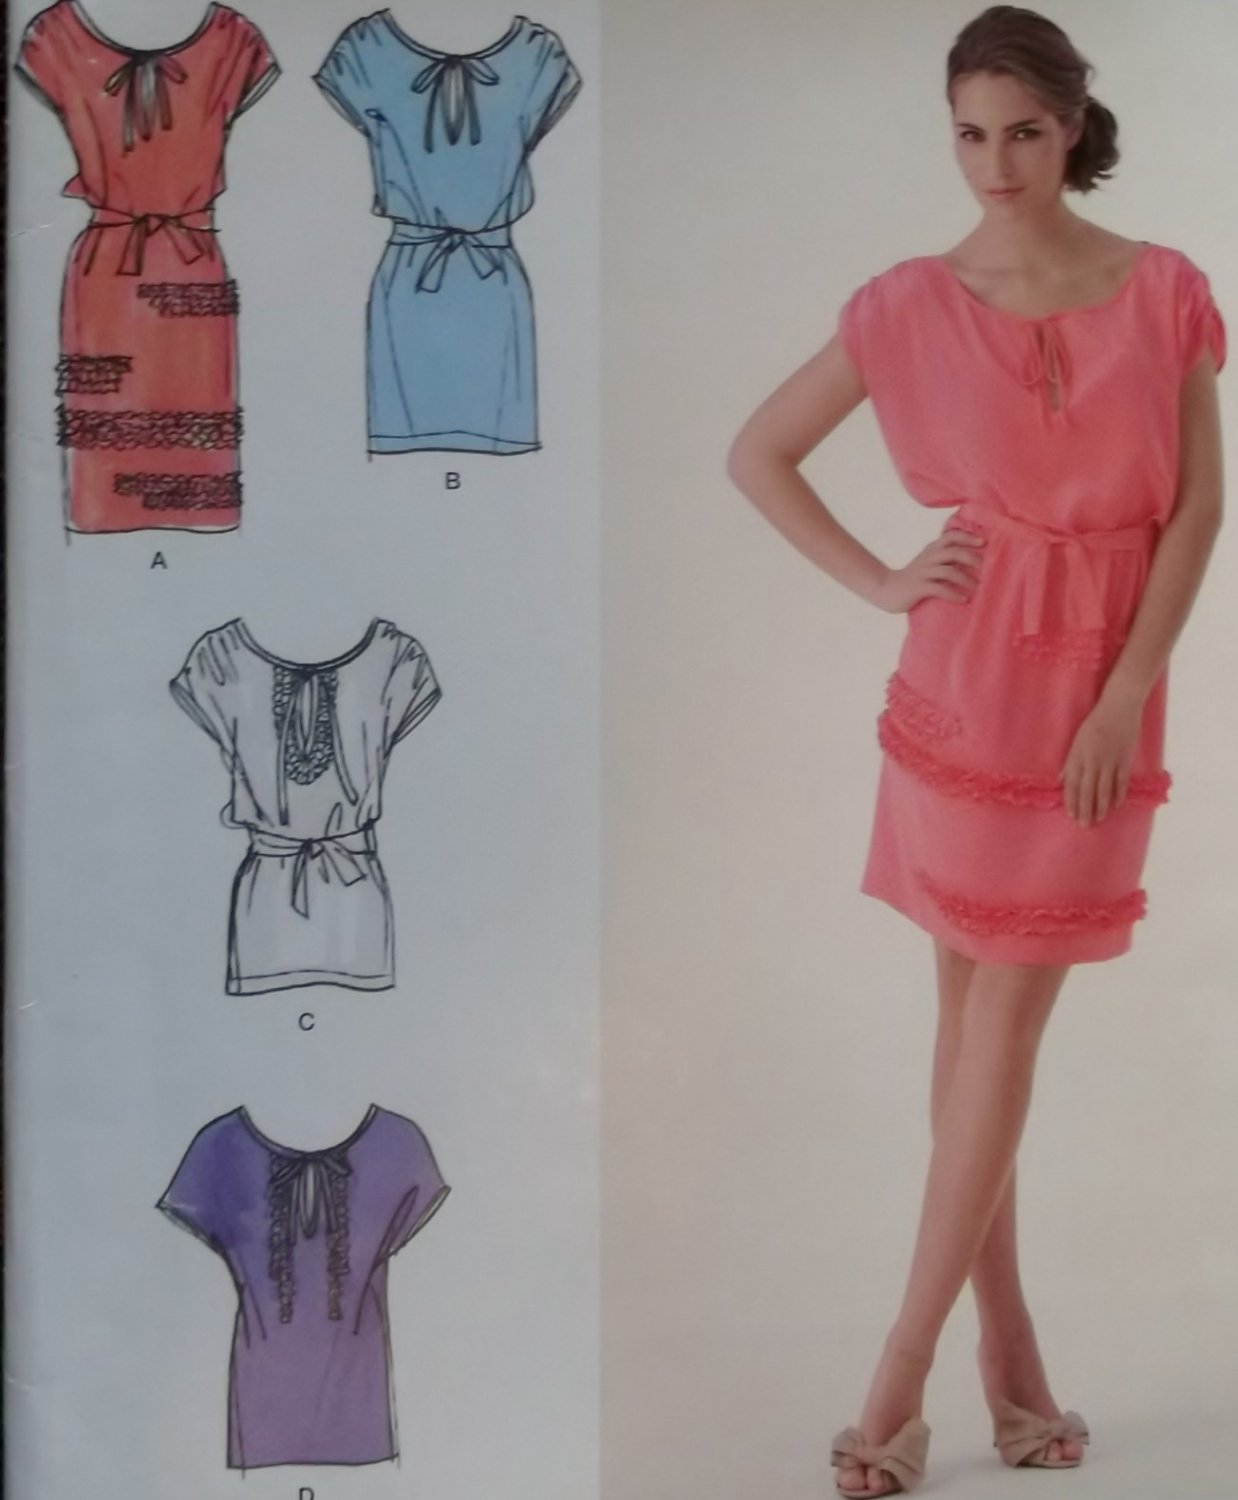 Cynthia Rowley Sewing Patterns: Simplicity 2361 Pattern, Cynthia Rowley Misses Pullover